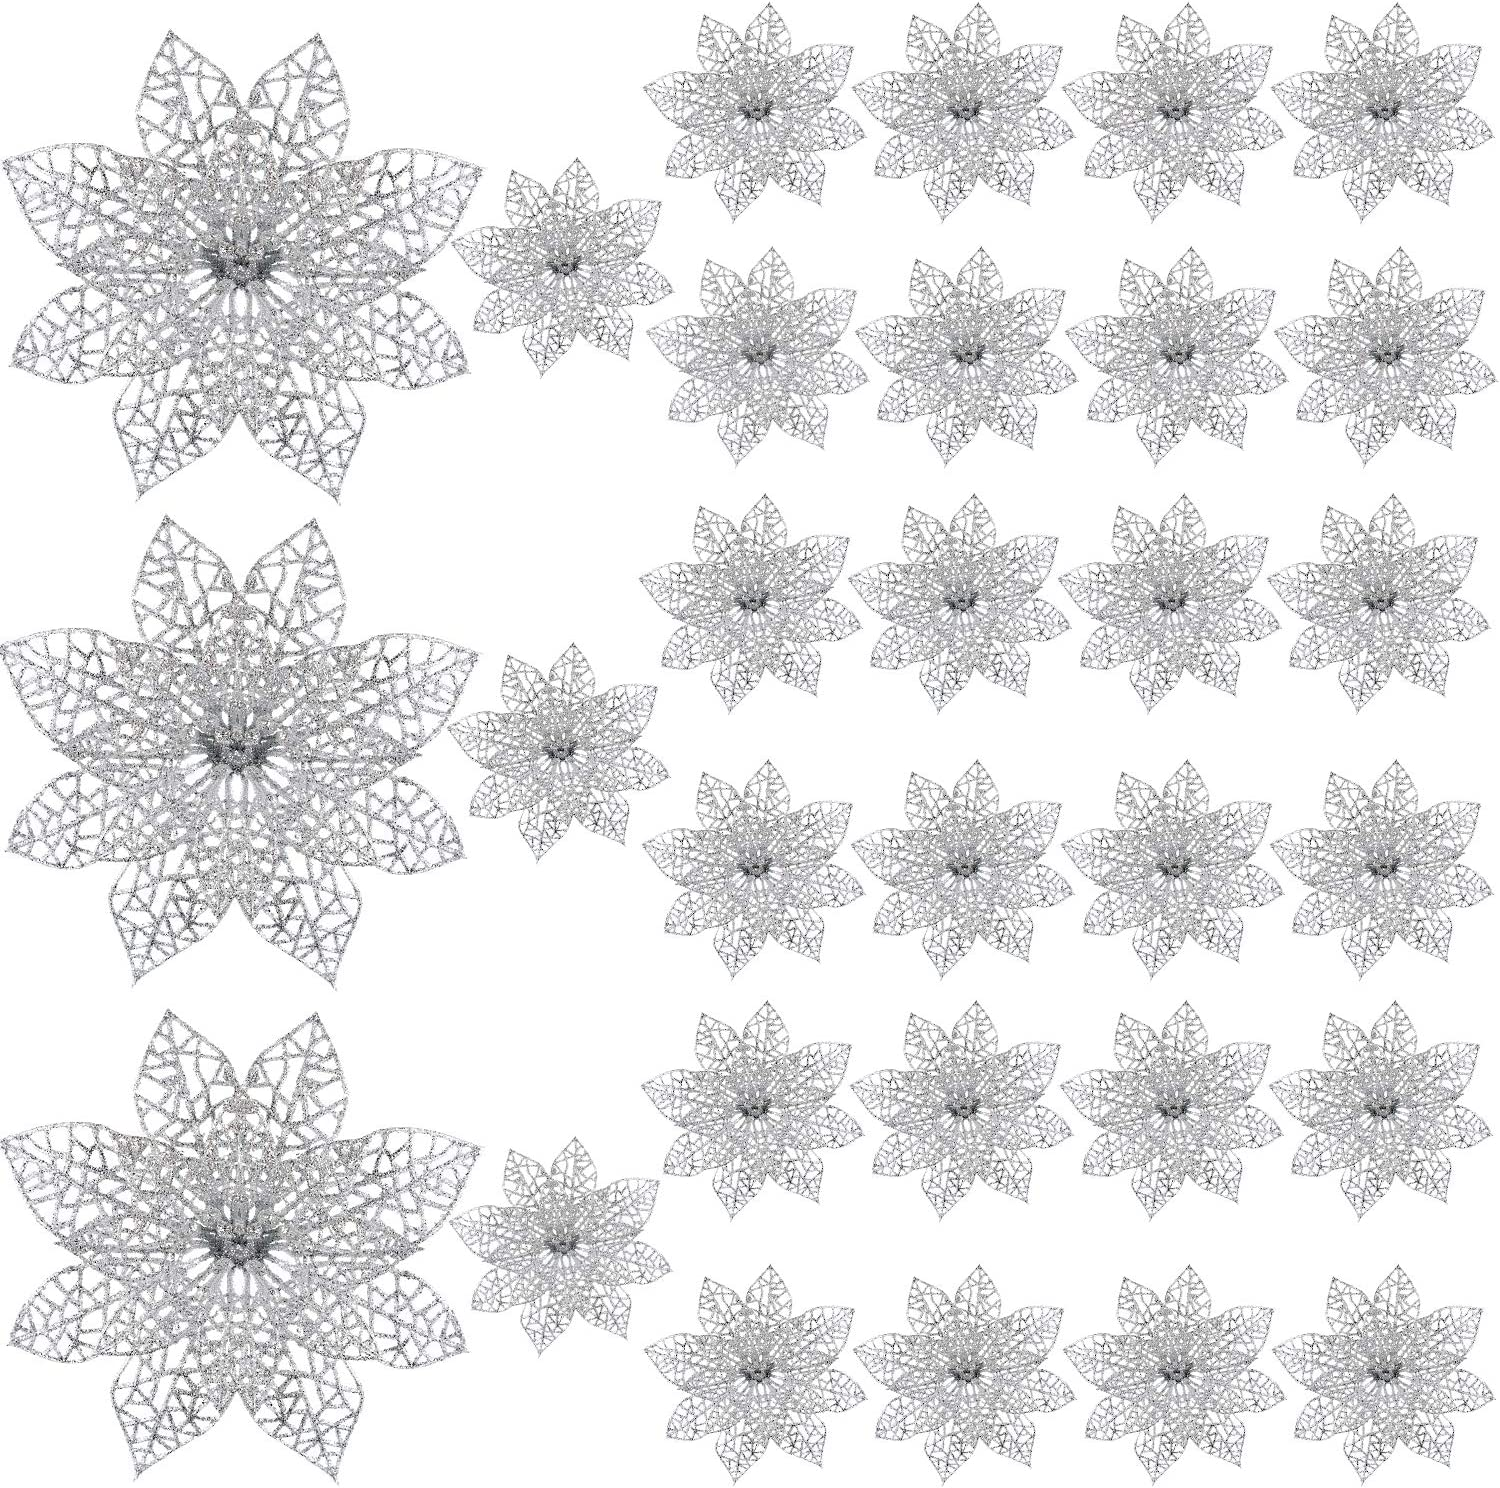 SATINIOR 30 Pieces Christmas Glitter Poinsettia Wedding Artificial Flowers for Christmas Tree Ornaments Wreaths Decor (Silvery)